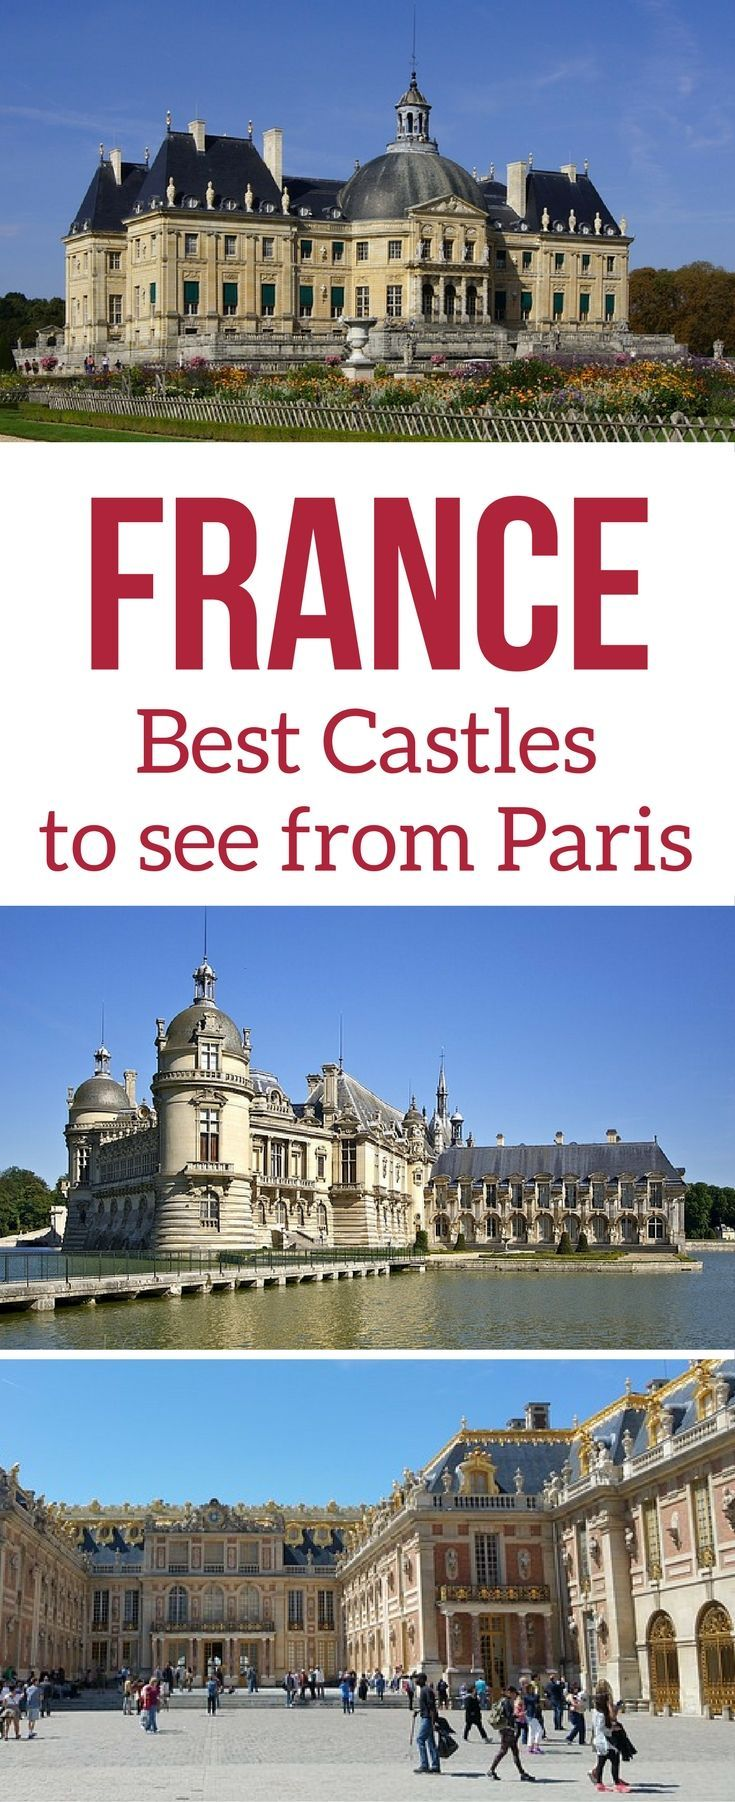 Map Of Paris And Attractions%0A     Best Day Trips from Paris France  u     Guide   Map   Tips by local